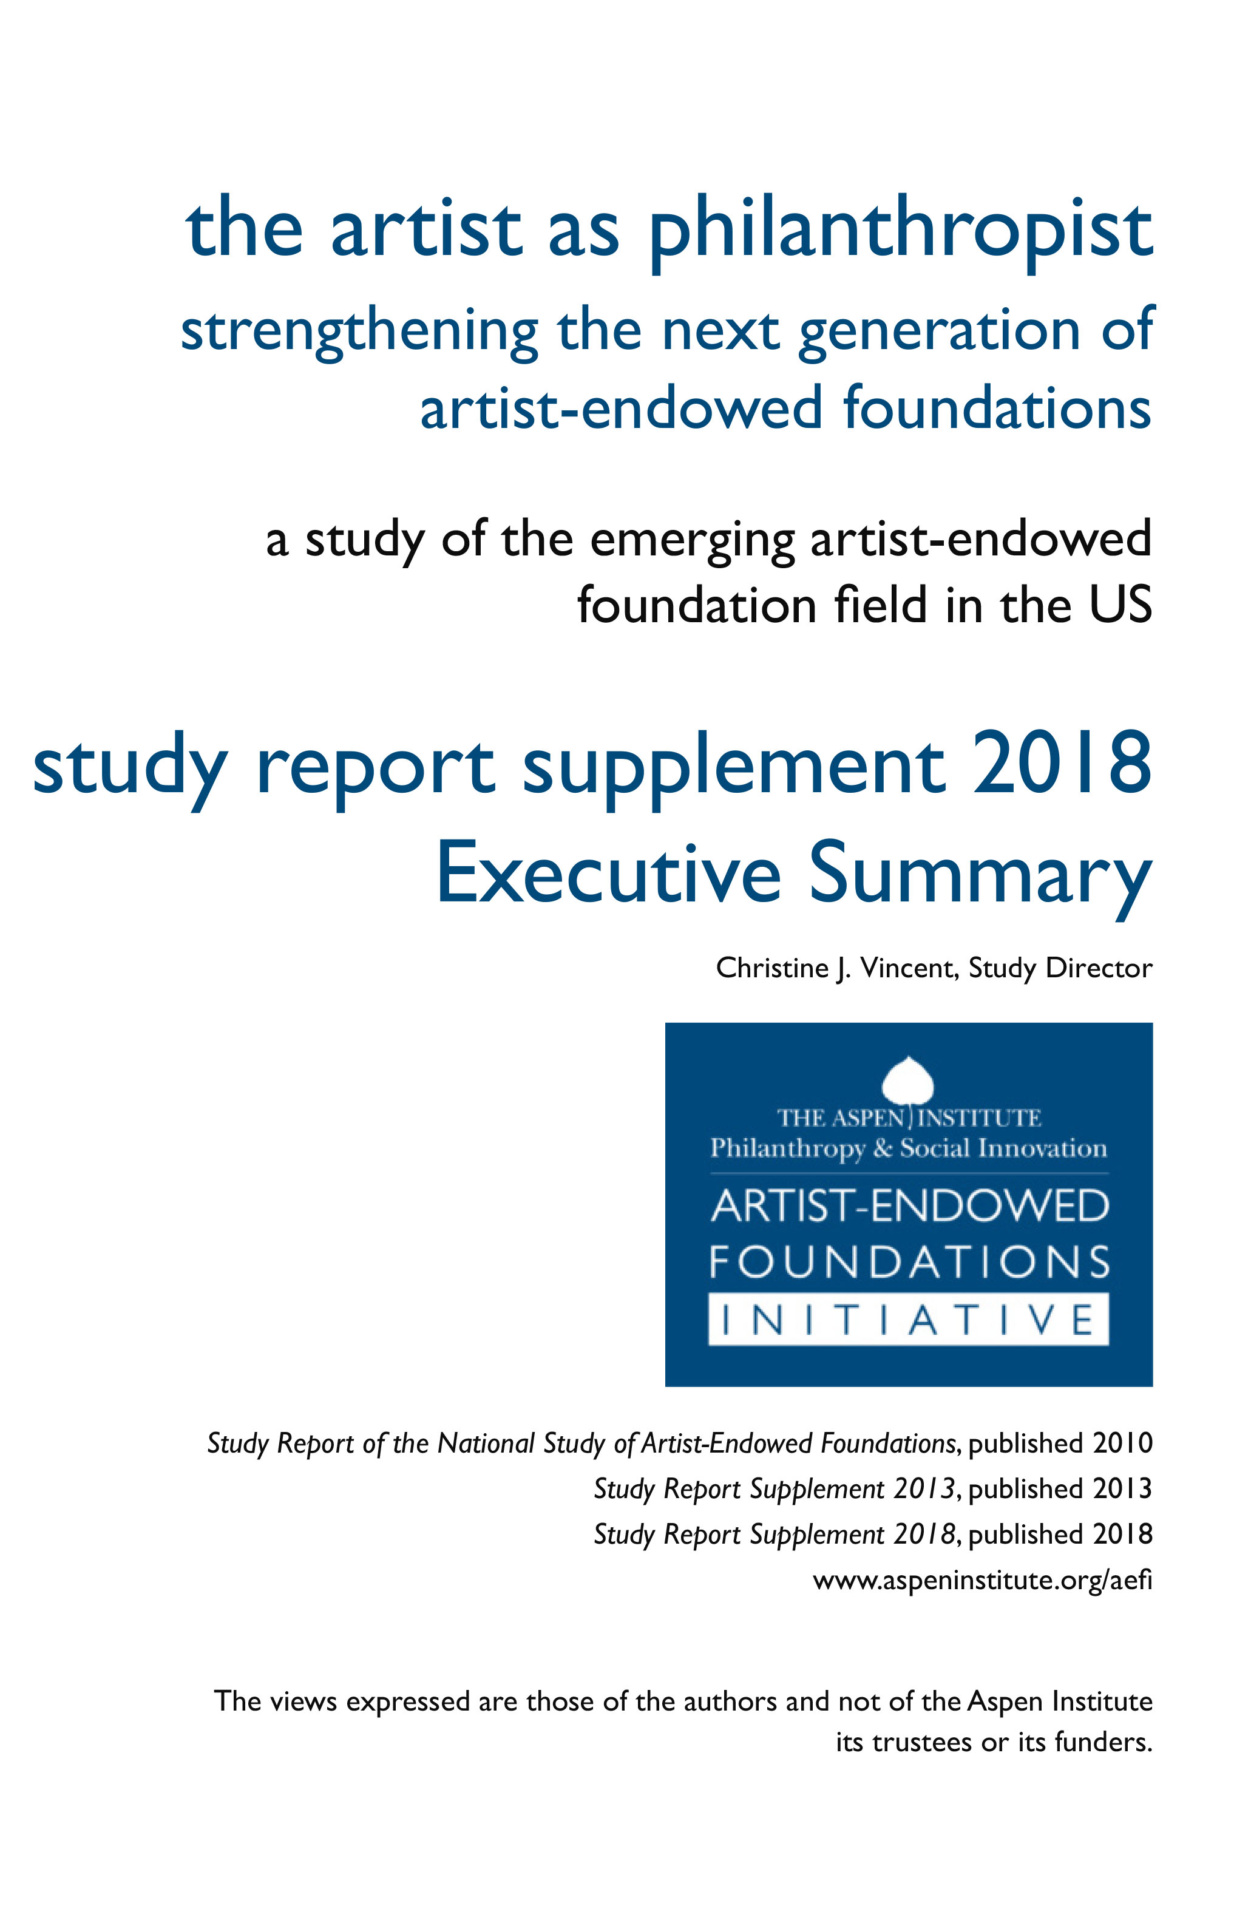 Study Report Supplement 2018 Executive Summary